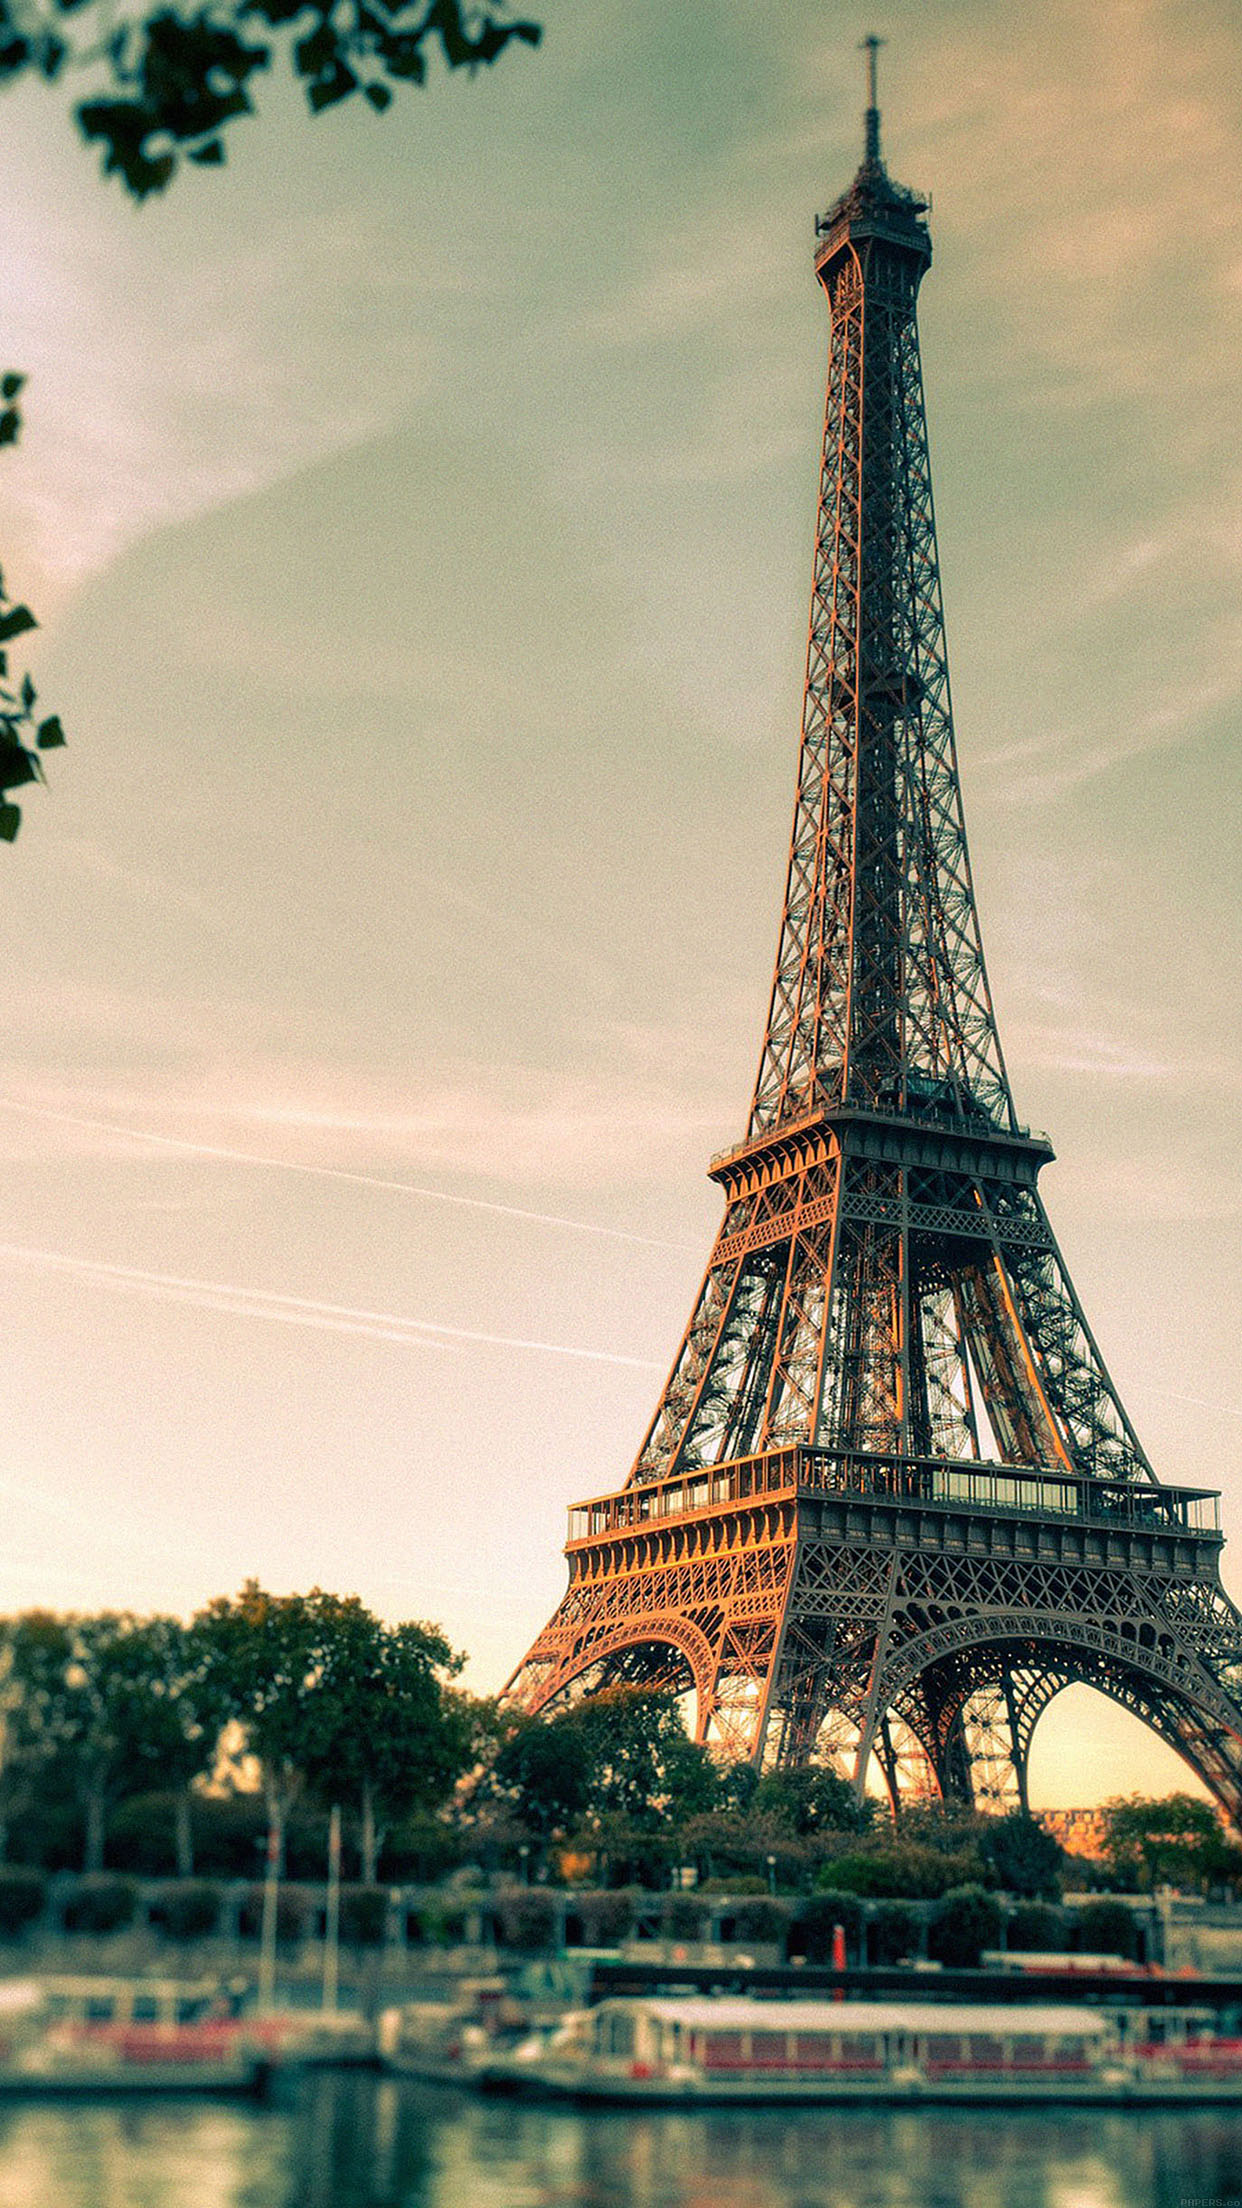 Iphone6papers Mc32 Wallpaper Eiffel Tower France City